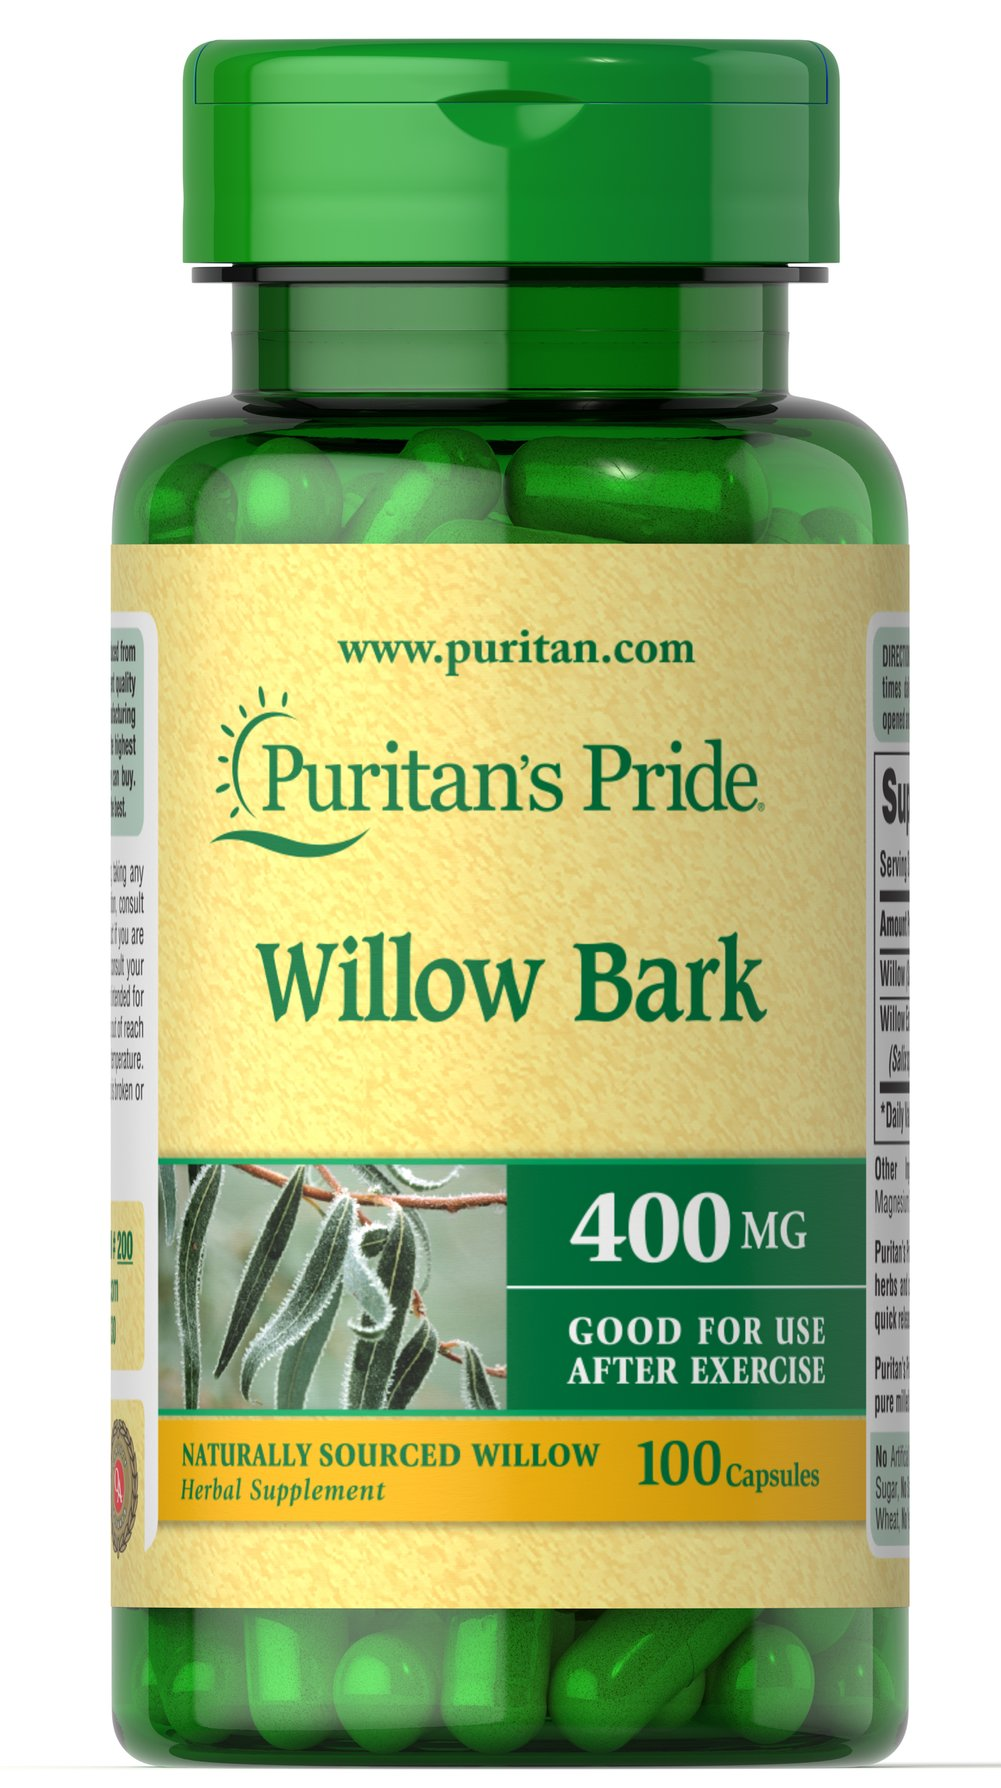 White Willow Bark 400 mg <p> Good for Minor Muscle Pain After Exercise**</p> 100 Capsules 400 mg $7.99